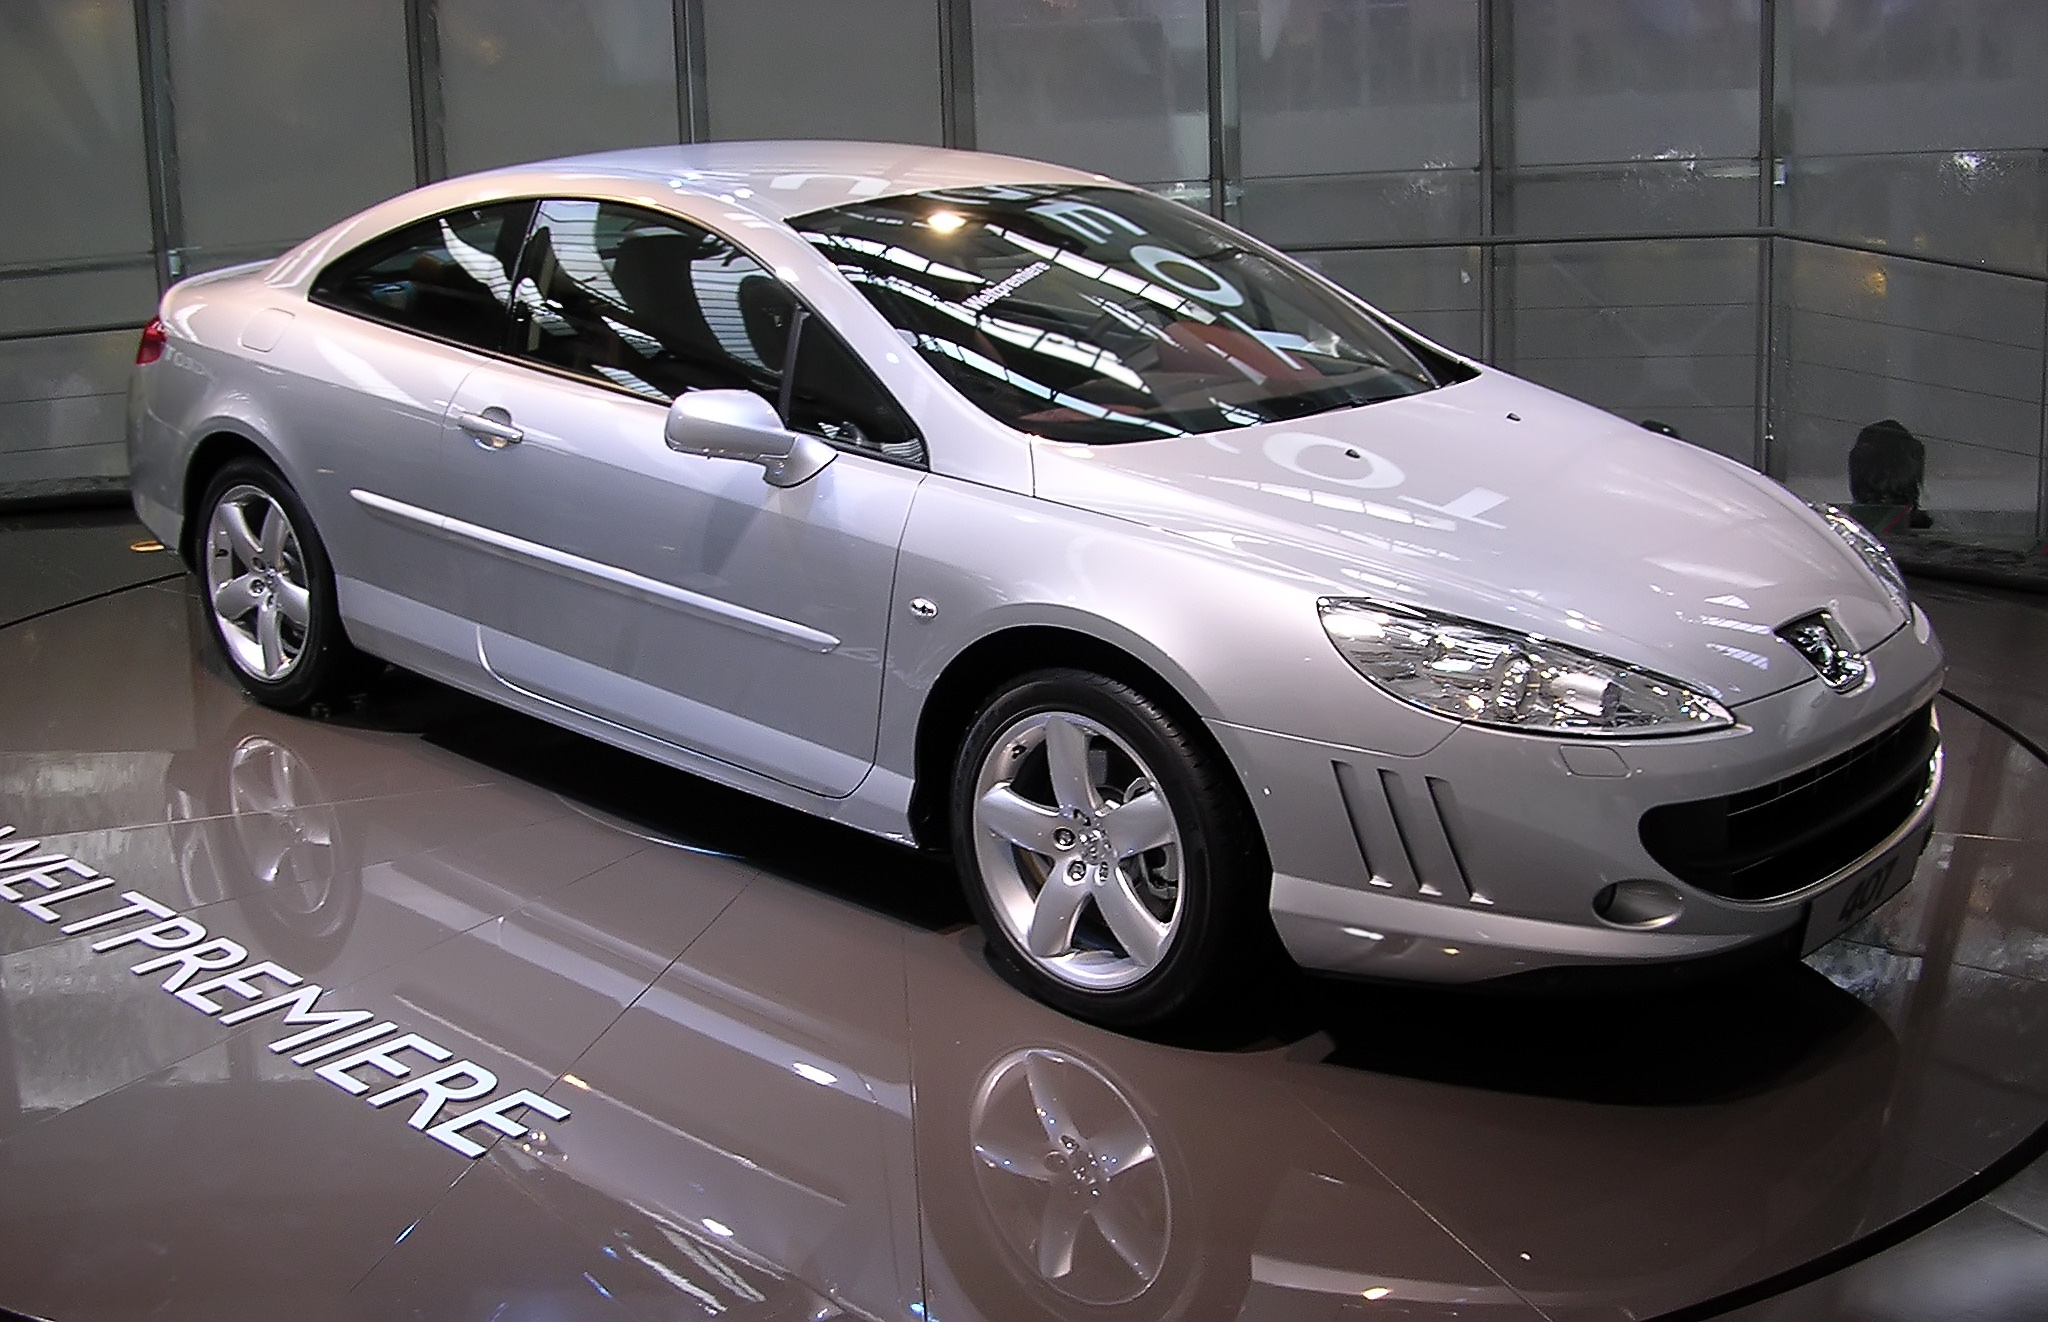 peugeot 407 coupe 2012 wallpaper #4